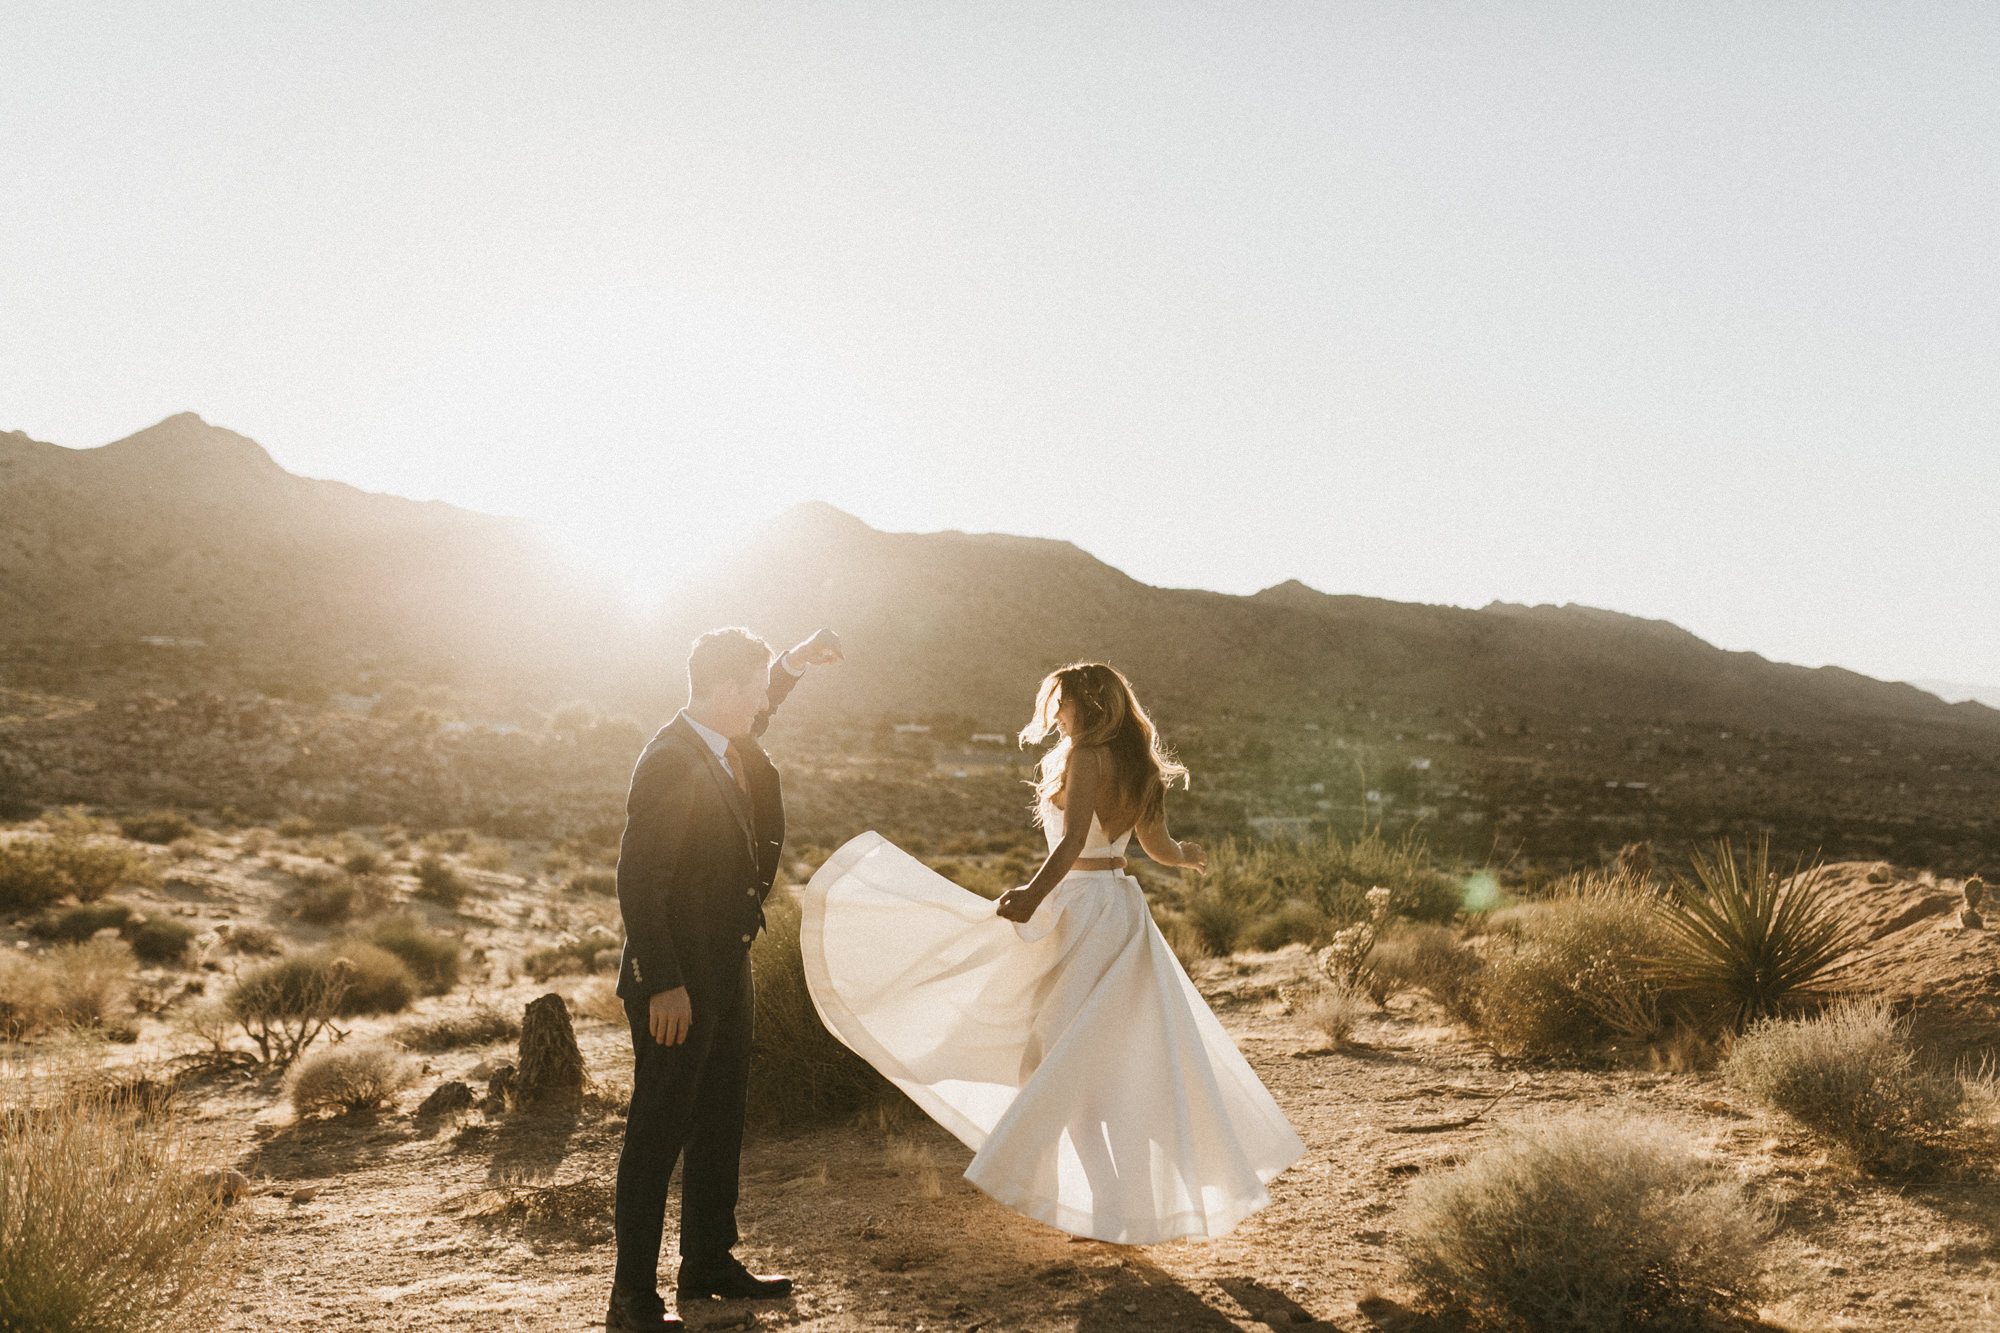 sacred_sands_joshua_tree_wedding-54.jpg